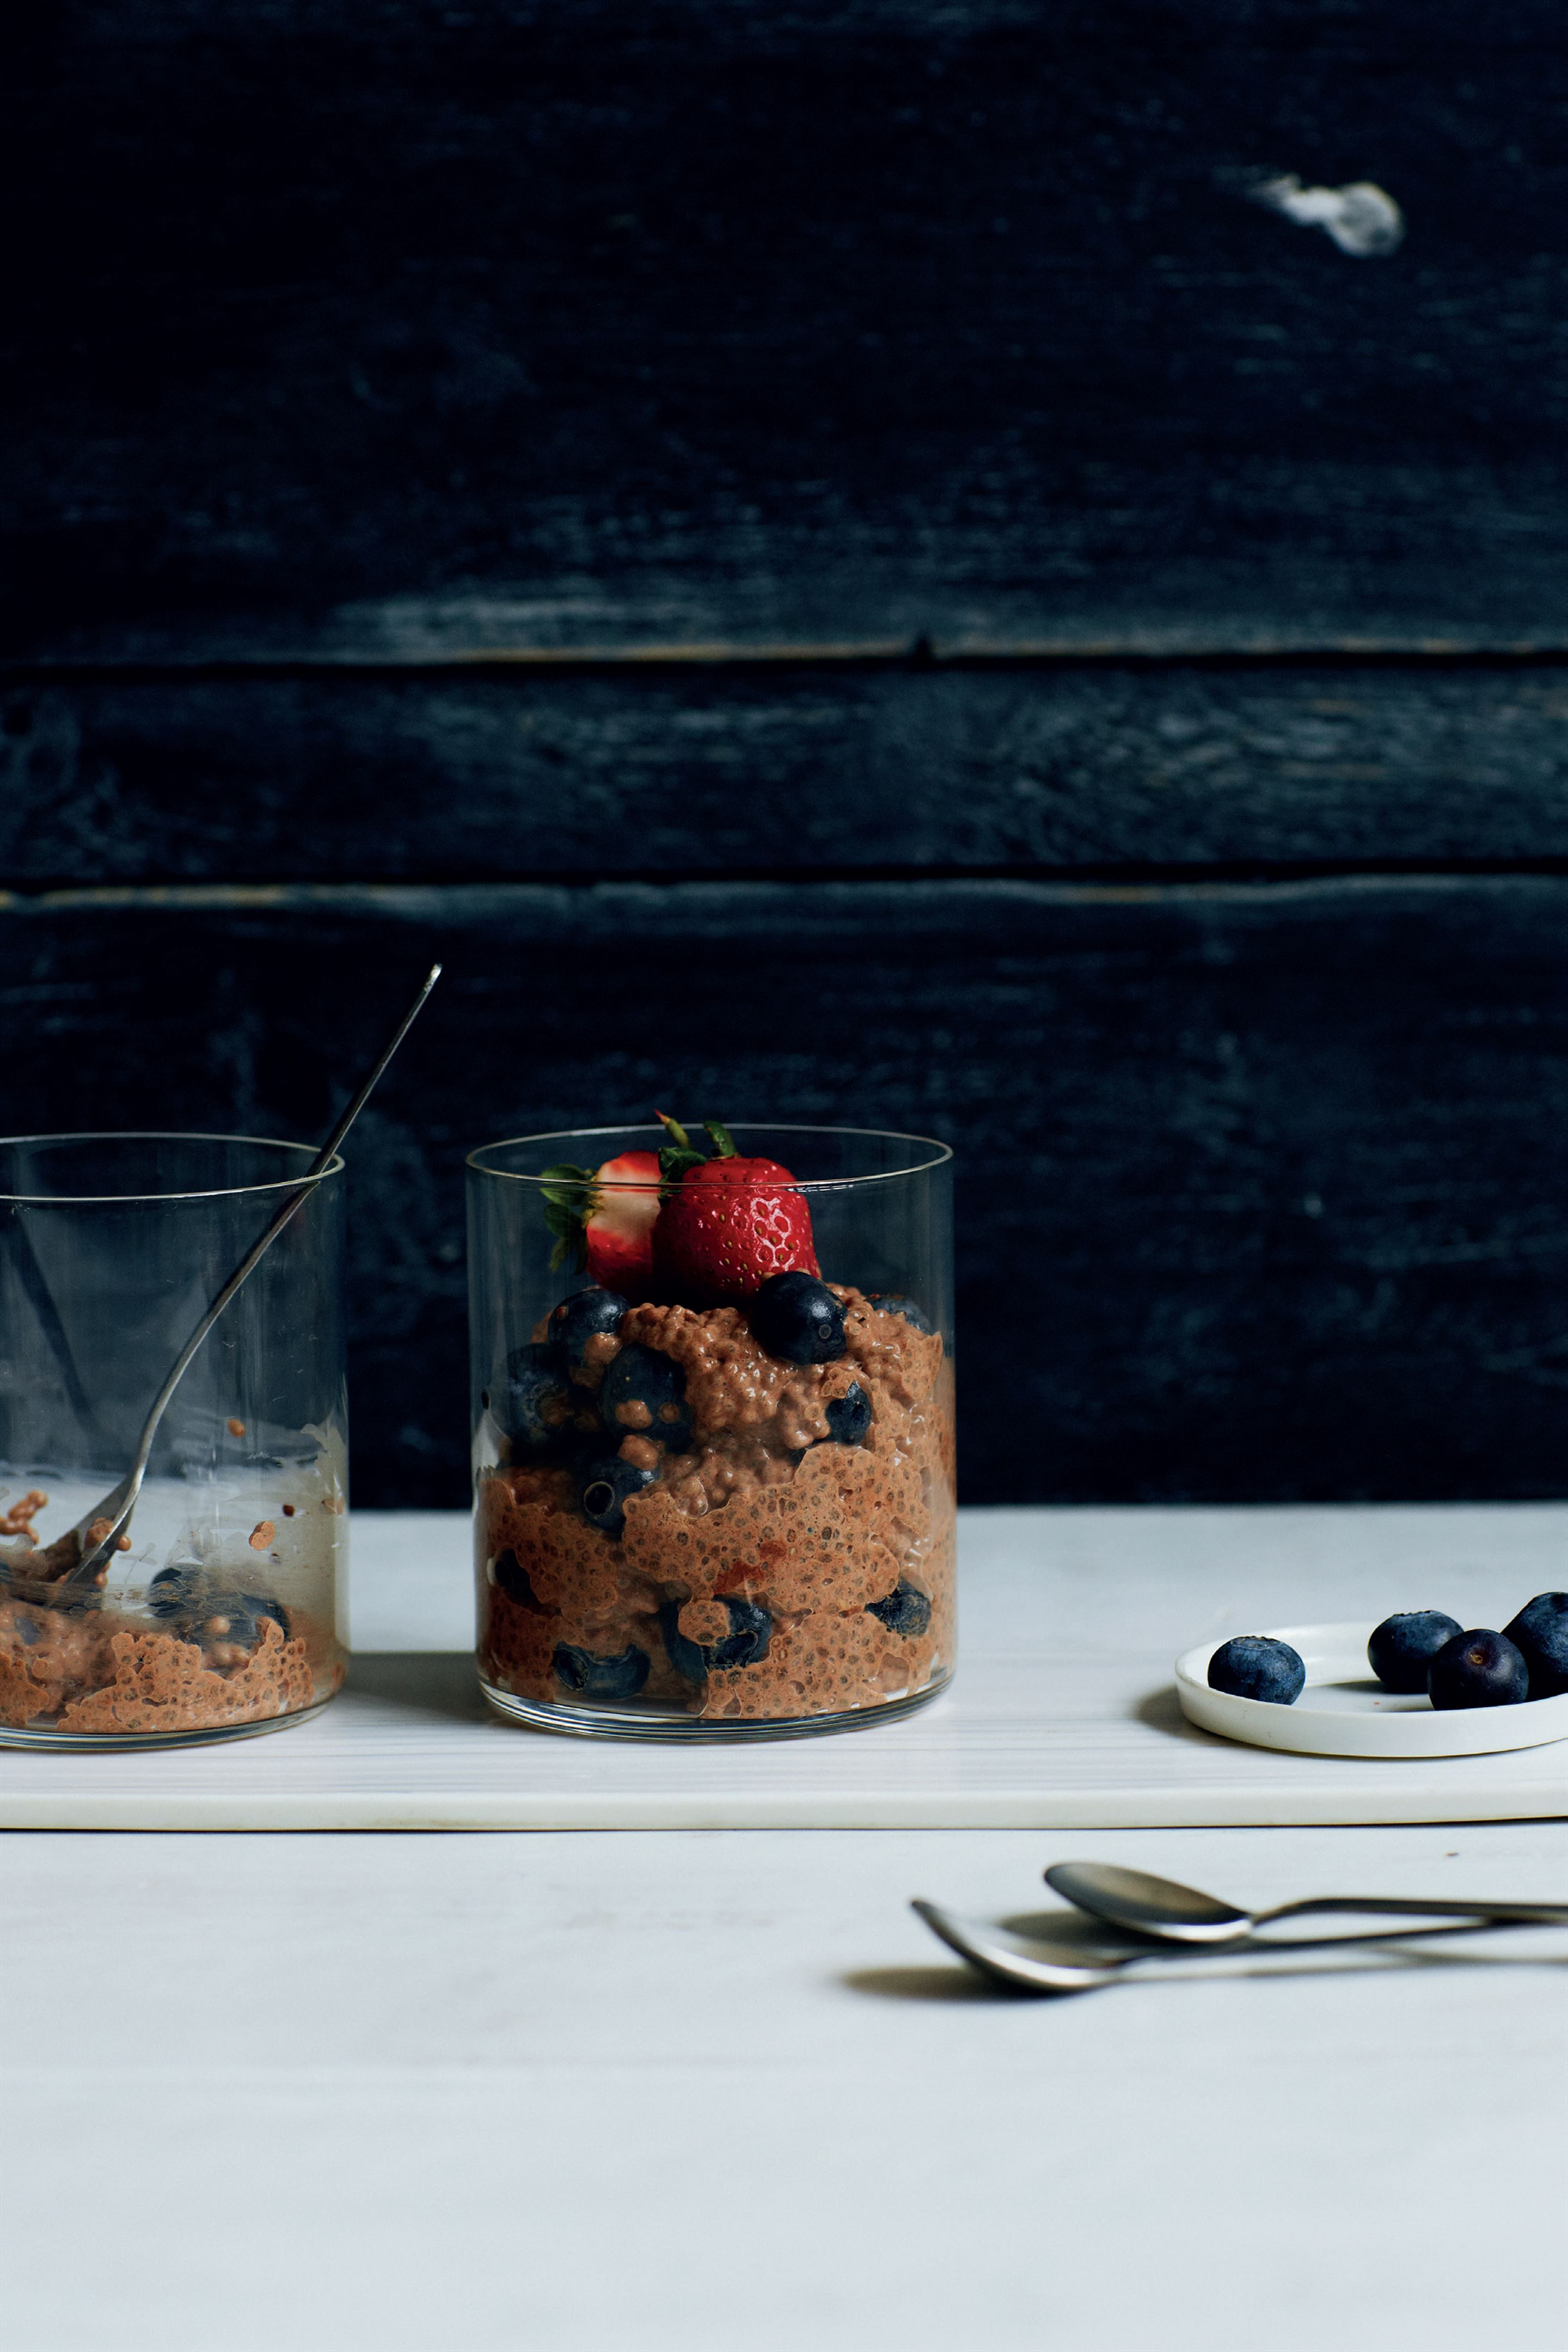 Superfood chia pudding